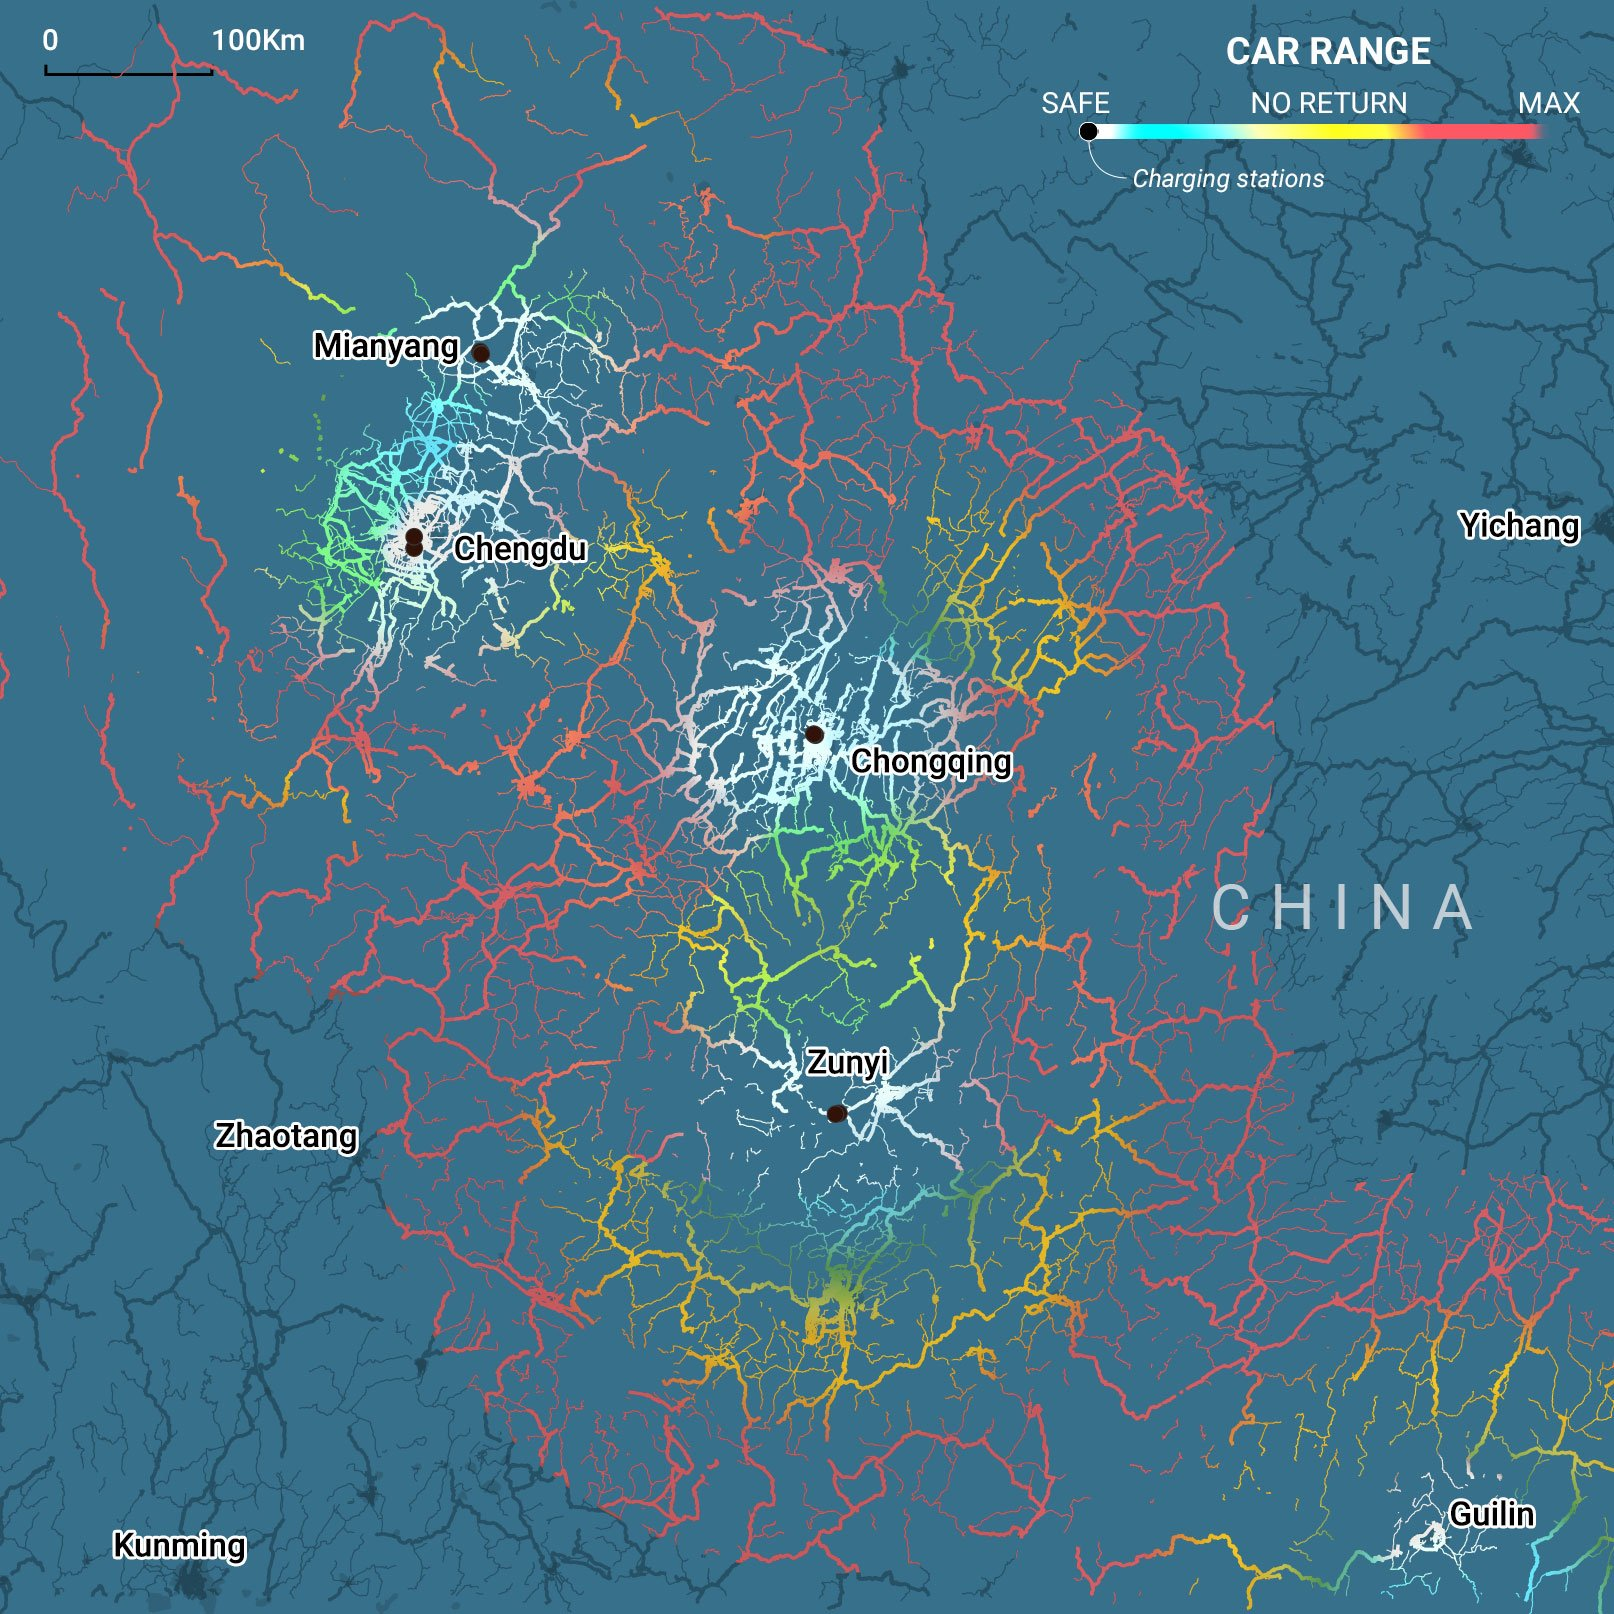 The Stones In Road For Chinas 2025 Plan On Electric Vehicles Power Distribution Switch Mic 1 Stations Mianyang Chengdu Chongqing And Zunyi Cities Make A Corridor Evs Southwest Area Of China But Highway Network Extends Further